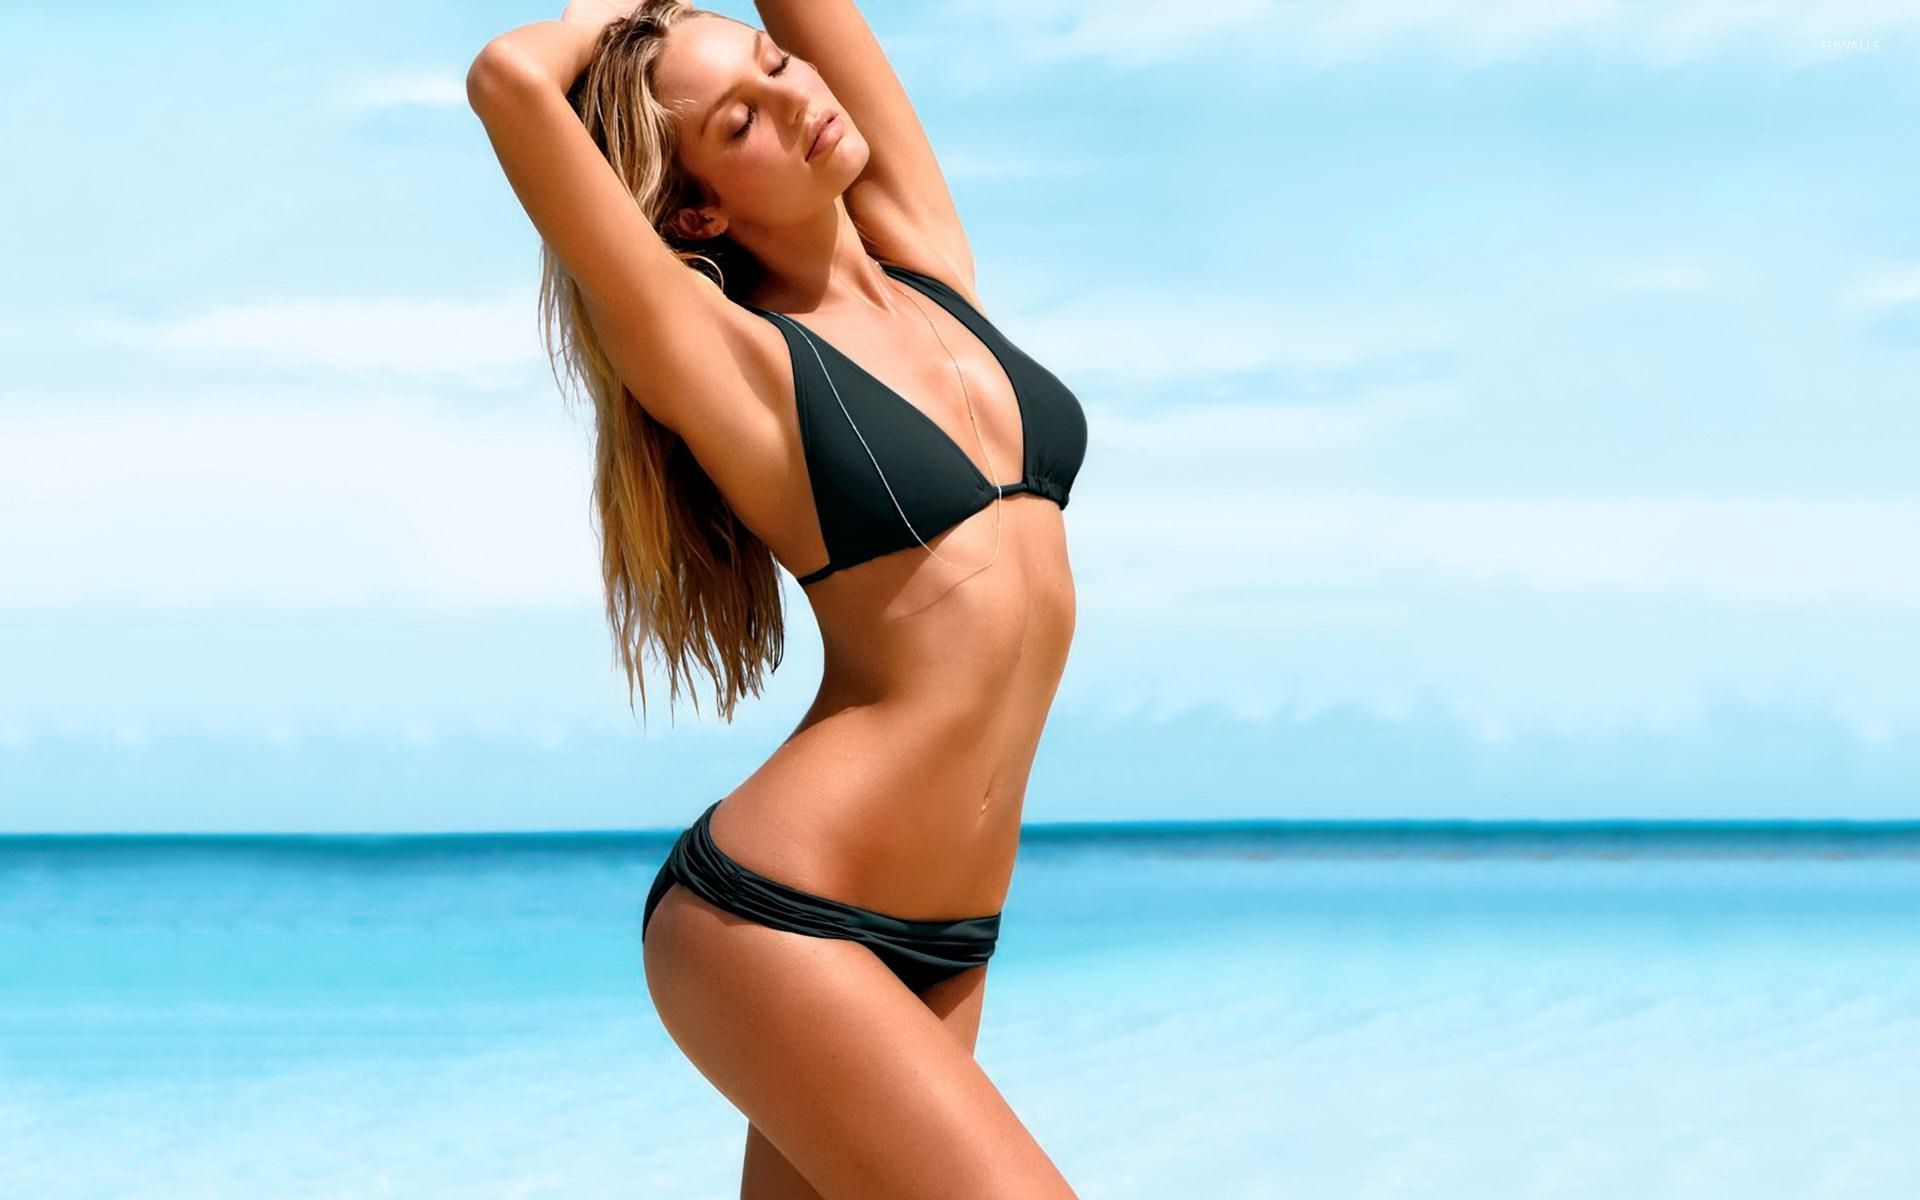 Amazing Candice Swanepoel On The Beach Wallpaper Girl Wallpapers